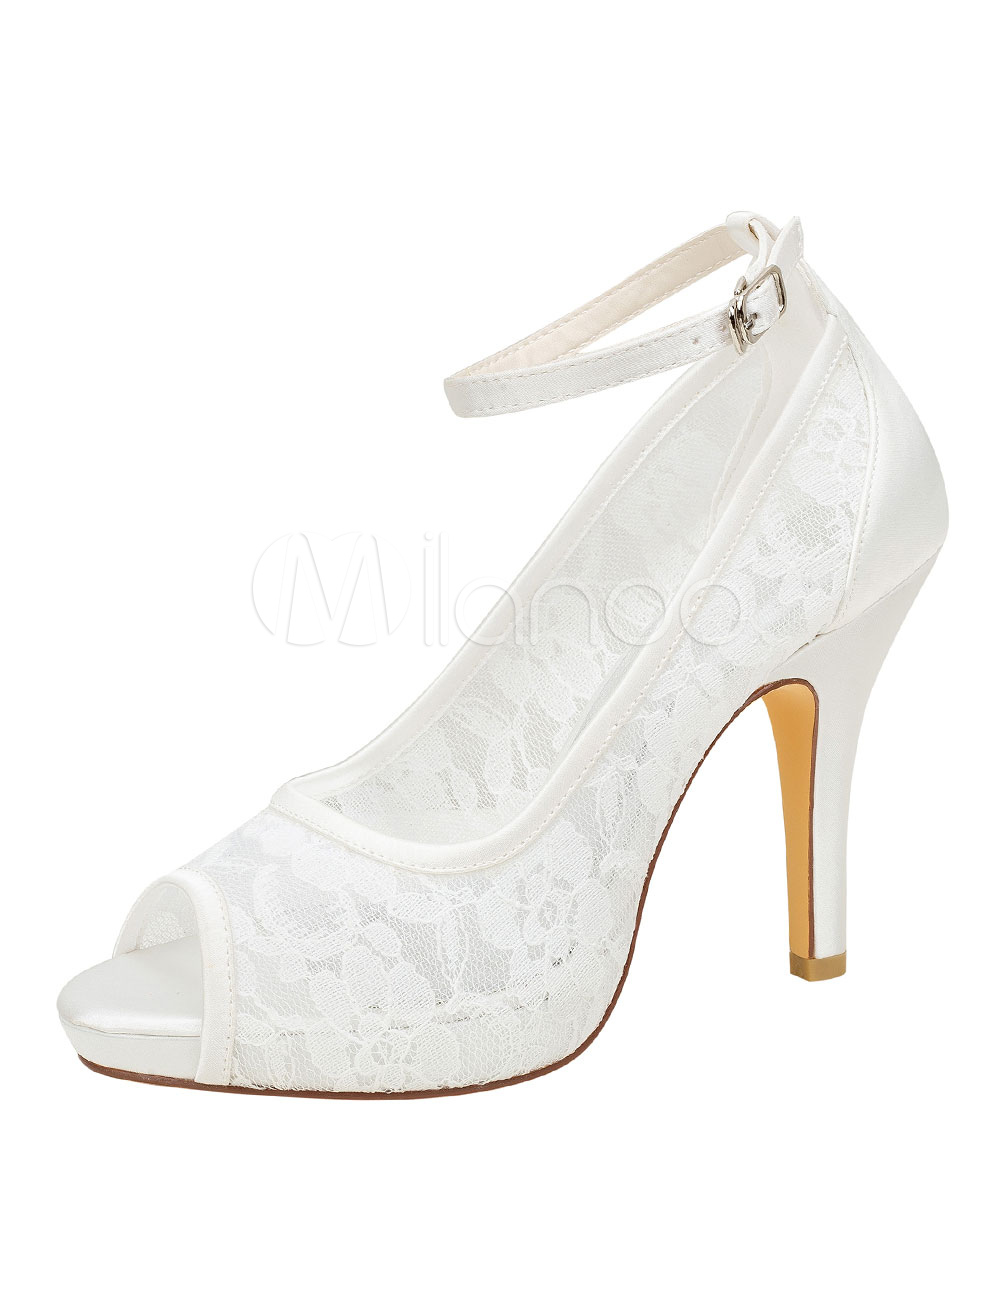 Buy Lace Wedding Shoes Ivory Peep Toe Ankle Strap High Heel Pumps for $57.59 in Milanoo store